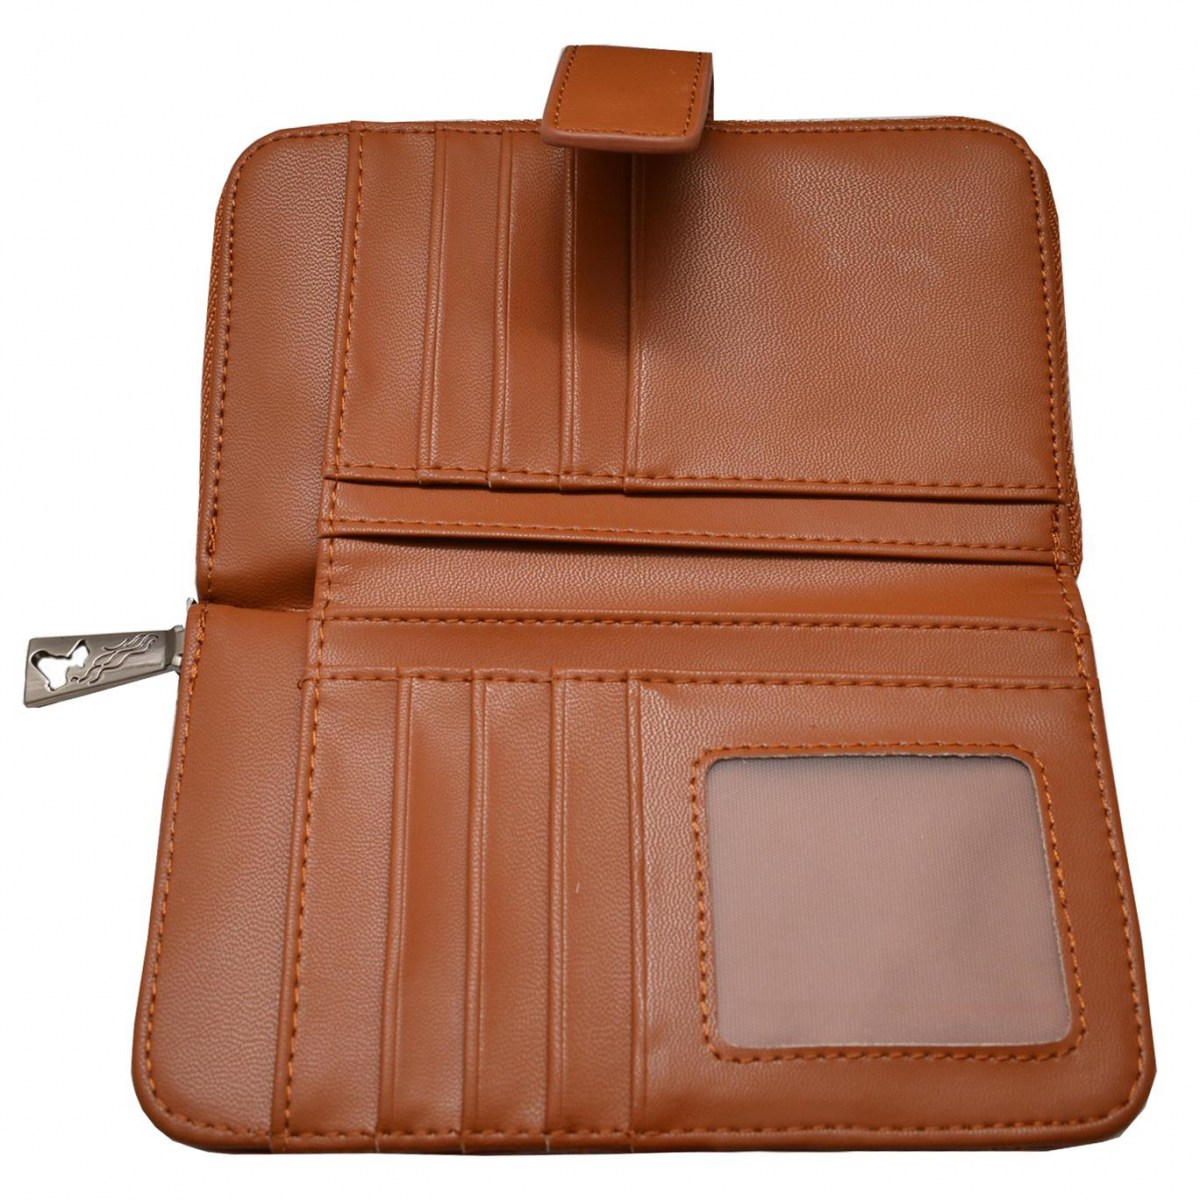 30-WALLET-Q-1768-5 (BROWN) 2